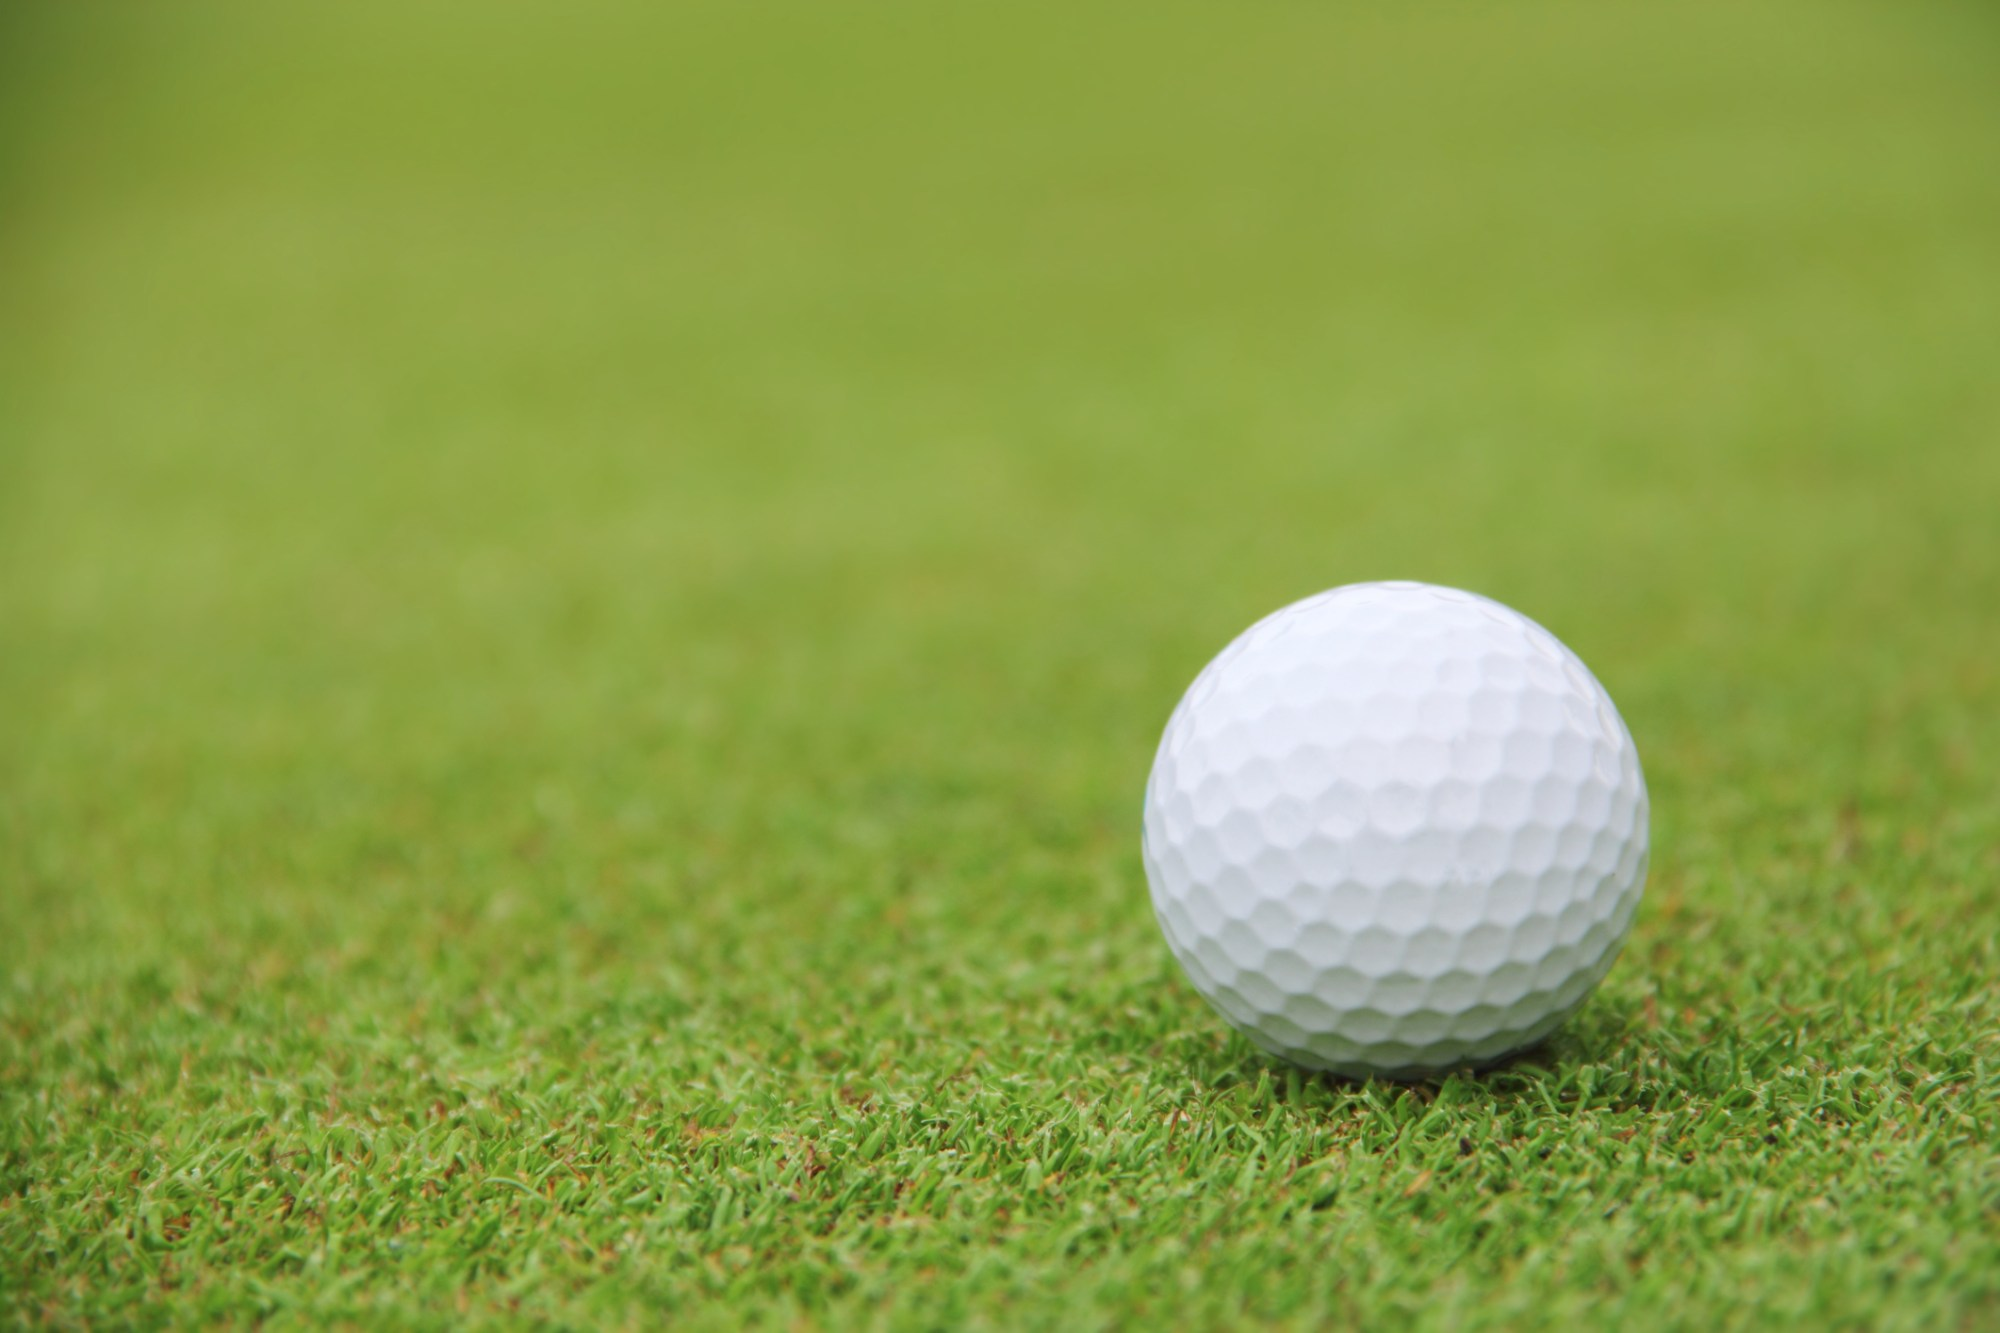 Generic golf ball on course_22563